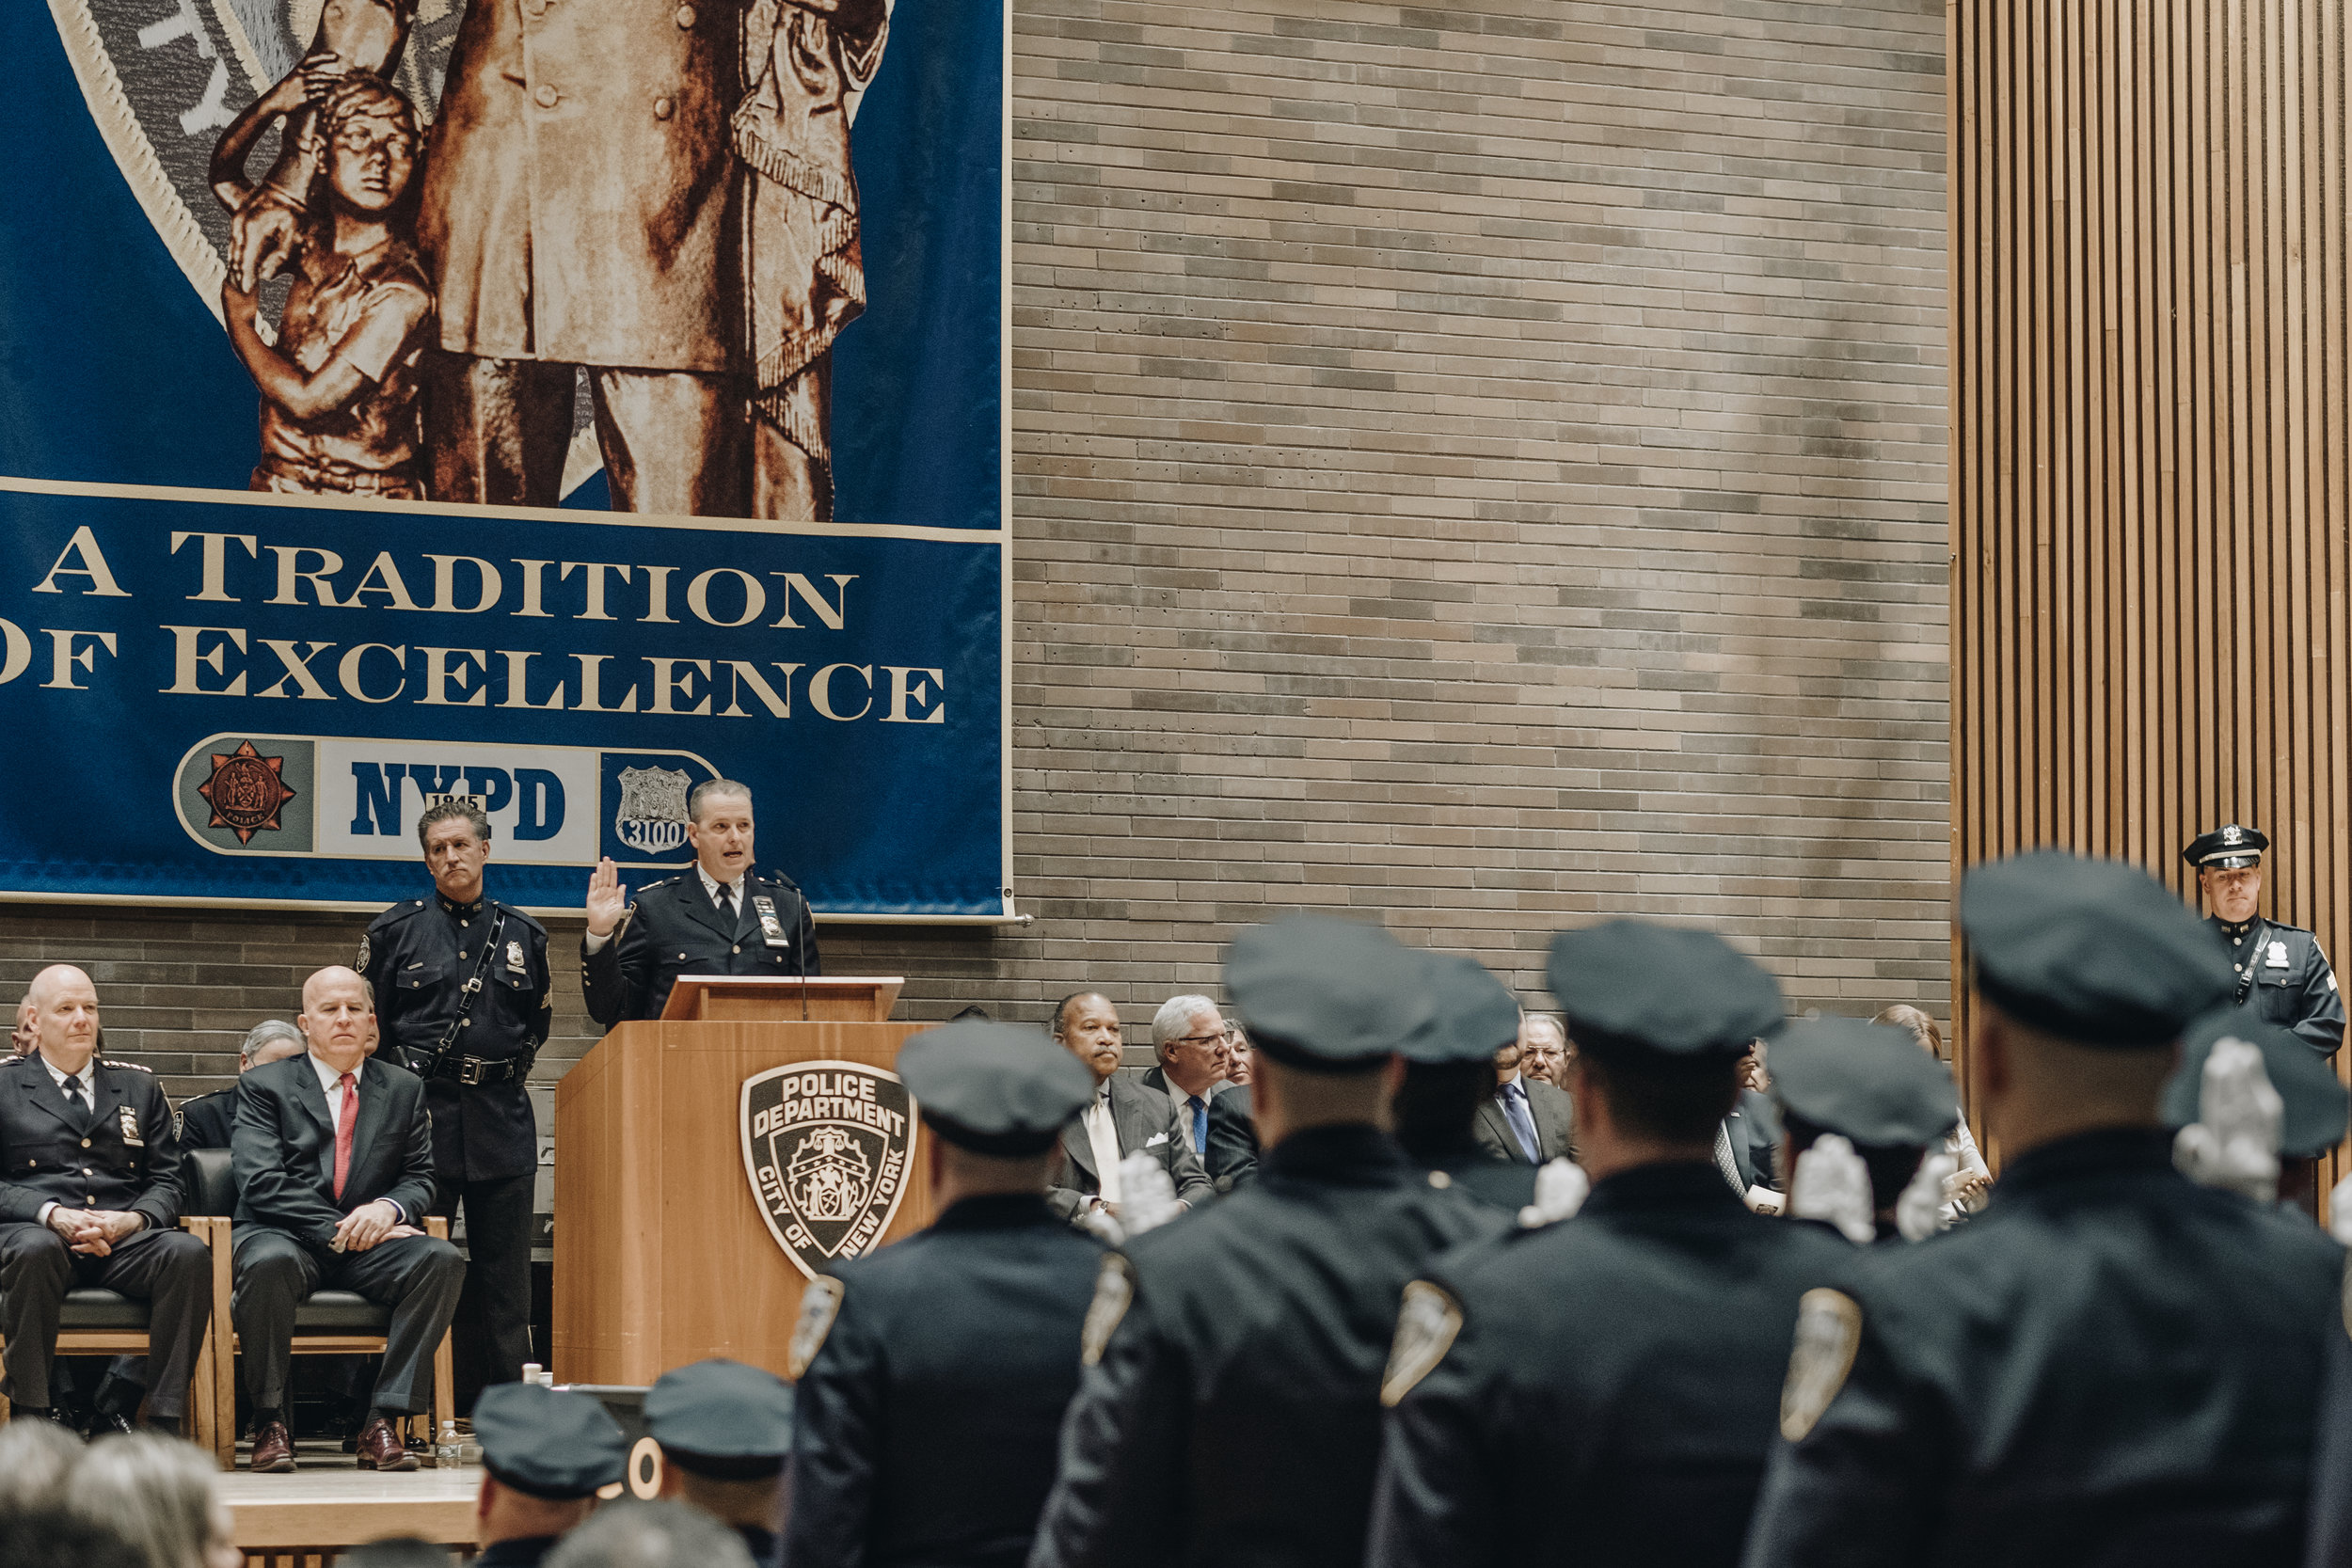 NYPD_Promotions-35.jpg